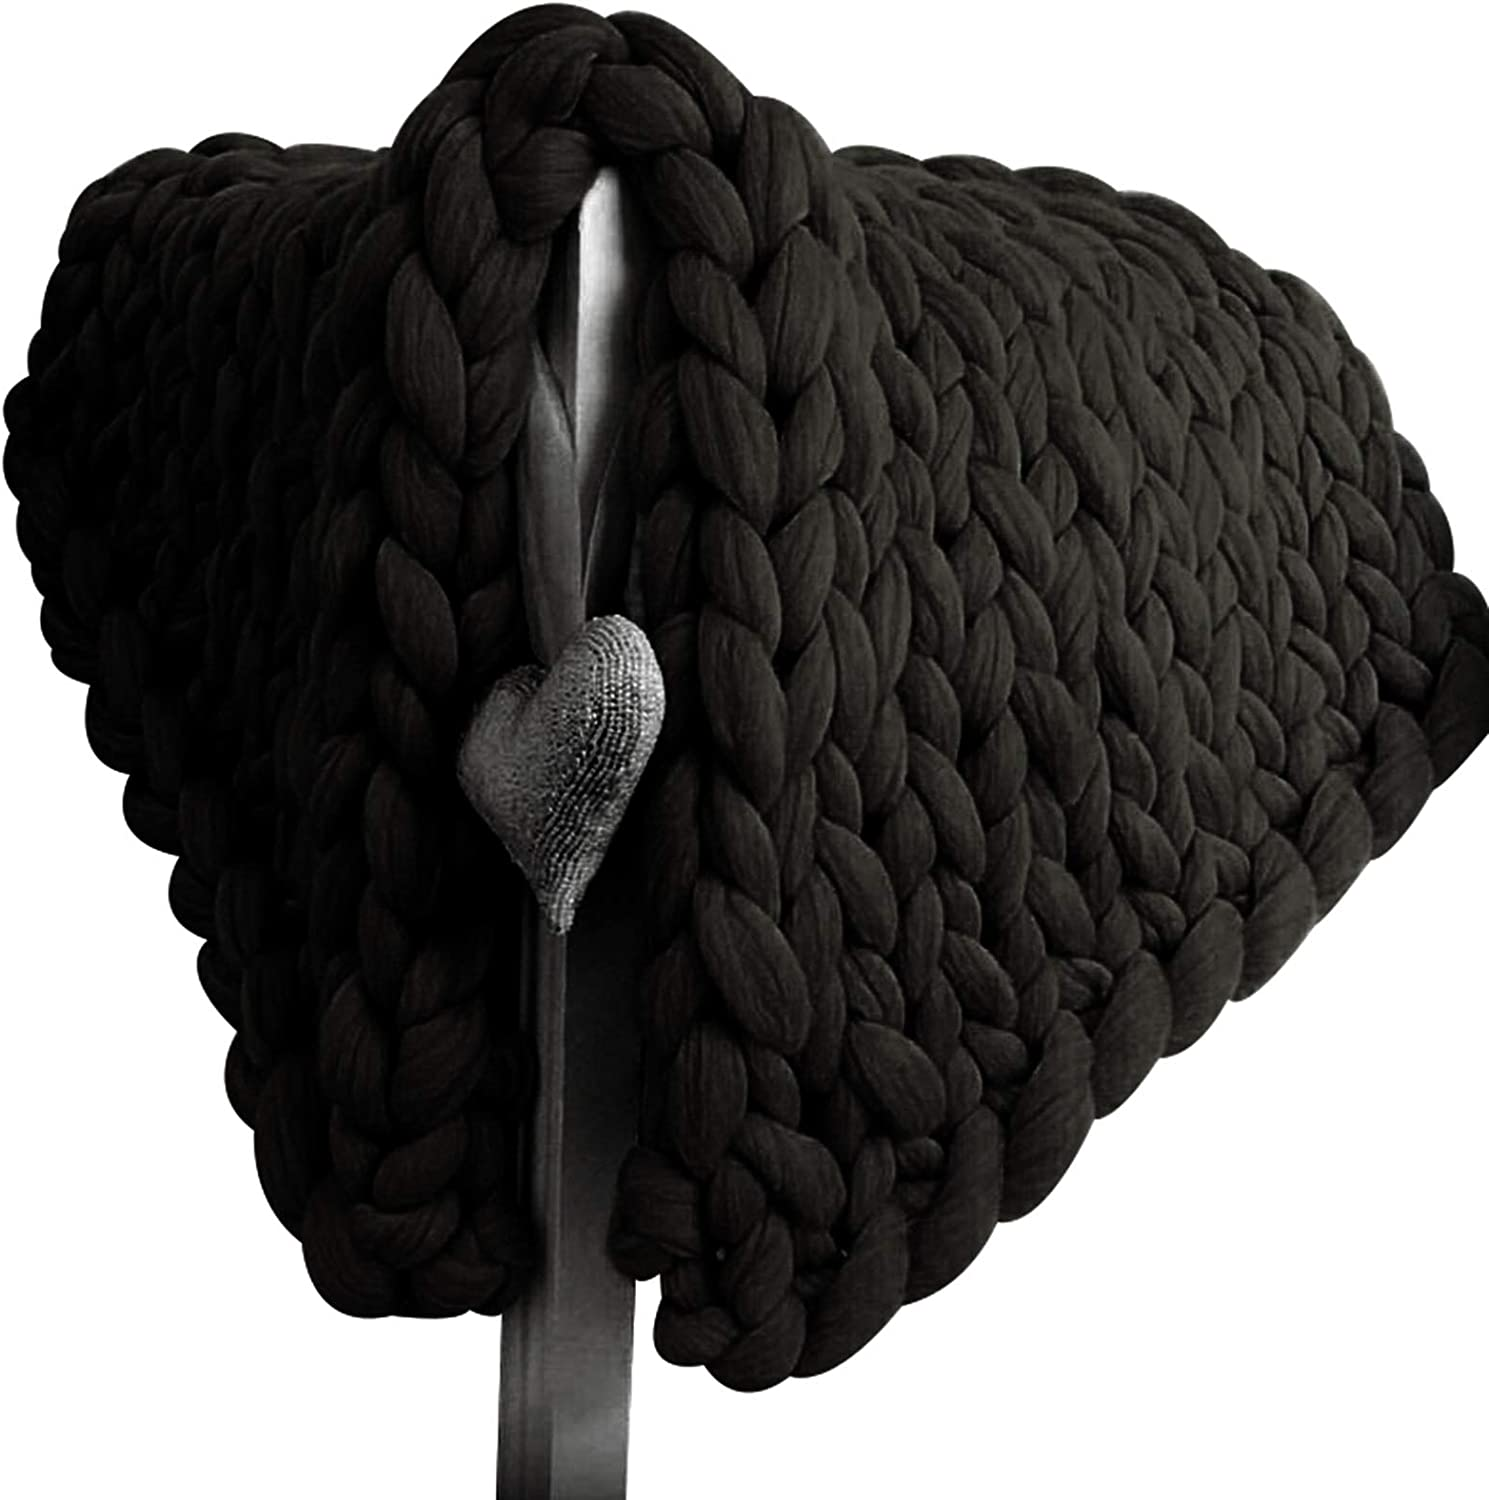 Factory outlet YXYH Hand Brand new Made Chunky Knit Yarn Blanket Knitted Thick Th